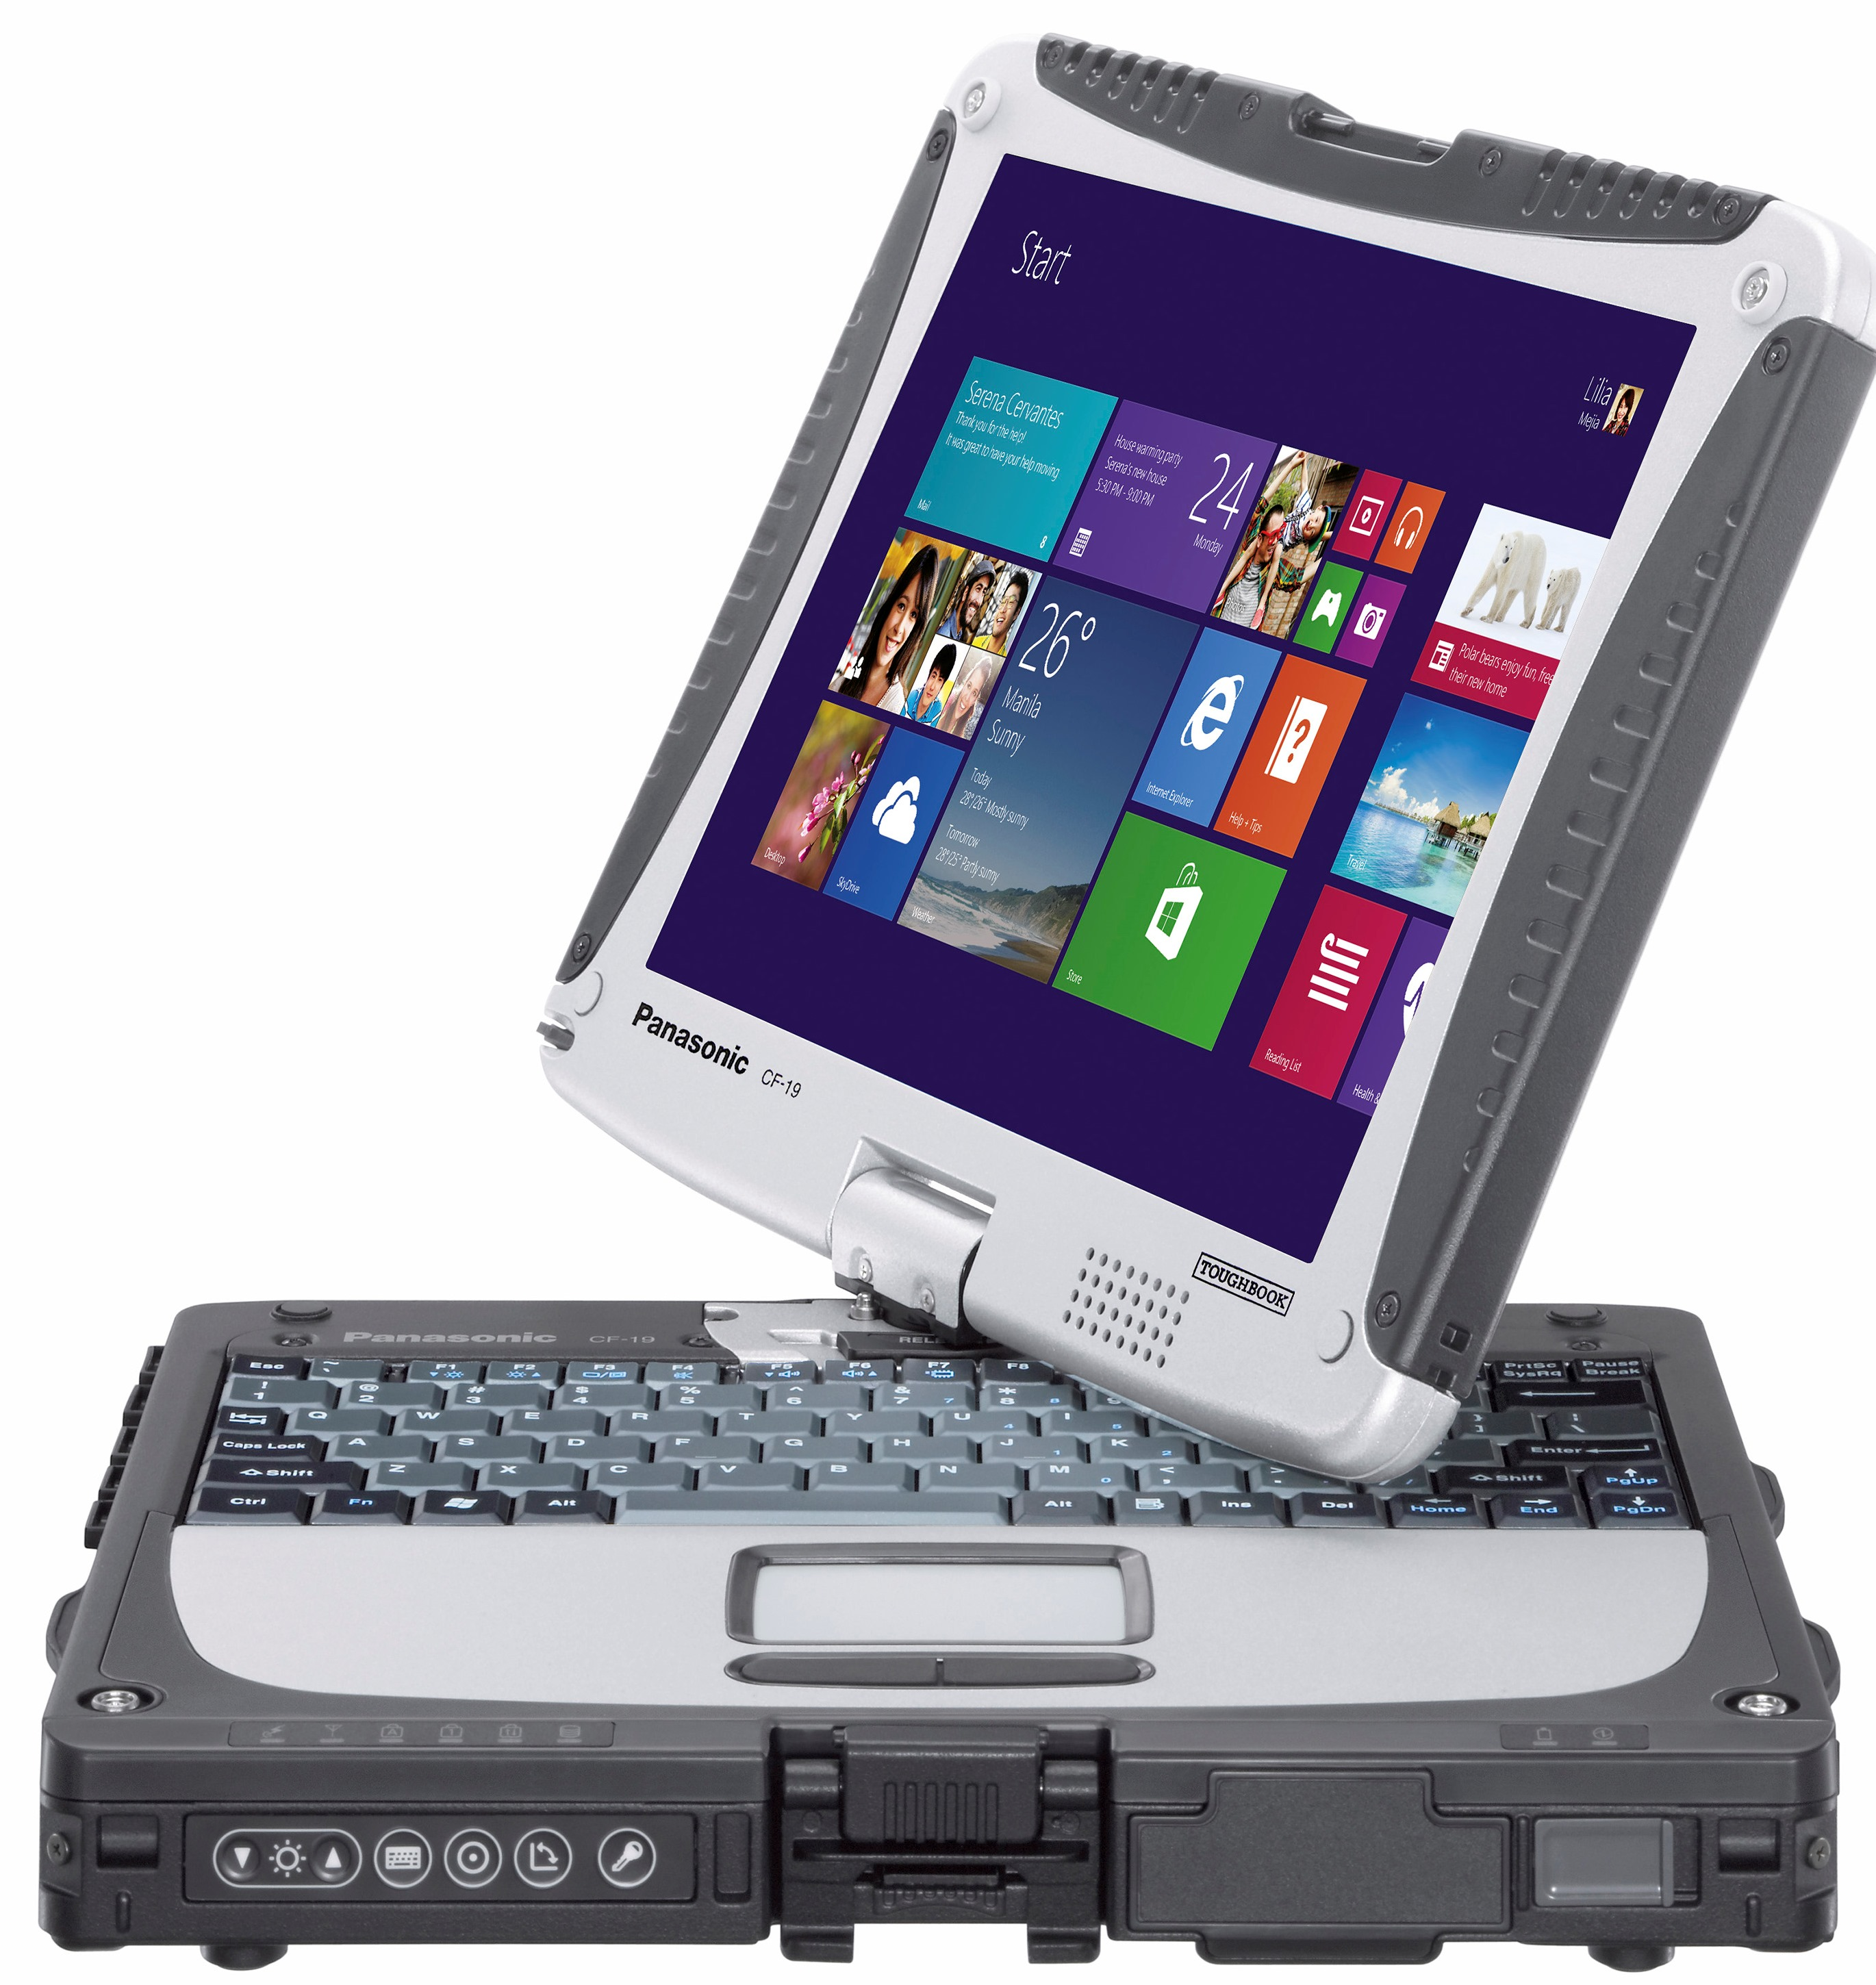 Panasonc Toughbook CF-19 MK7  Windows 8